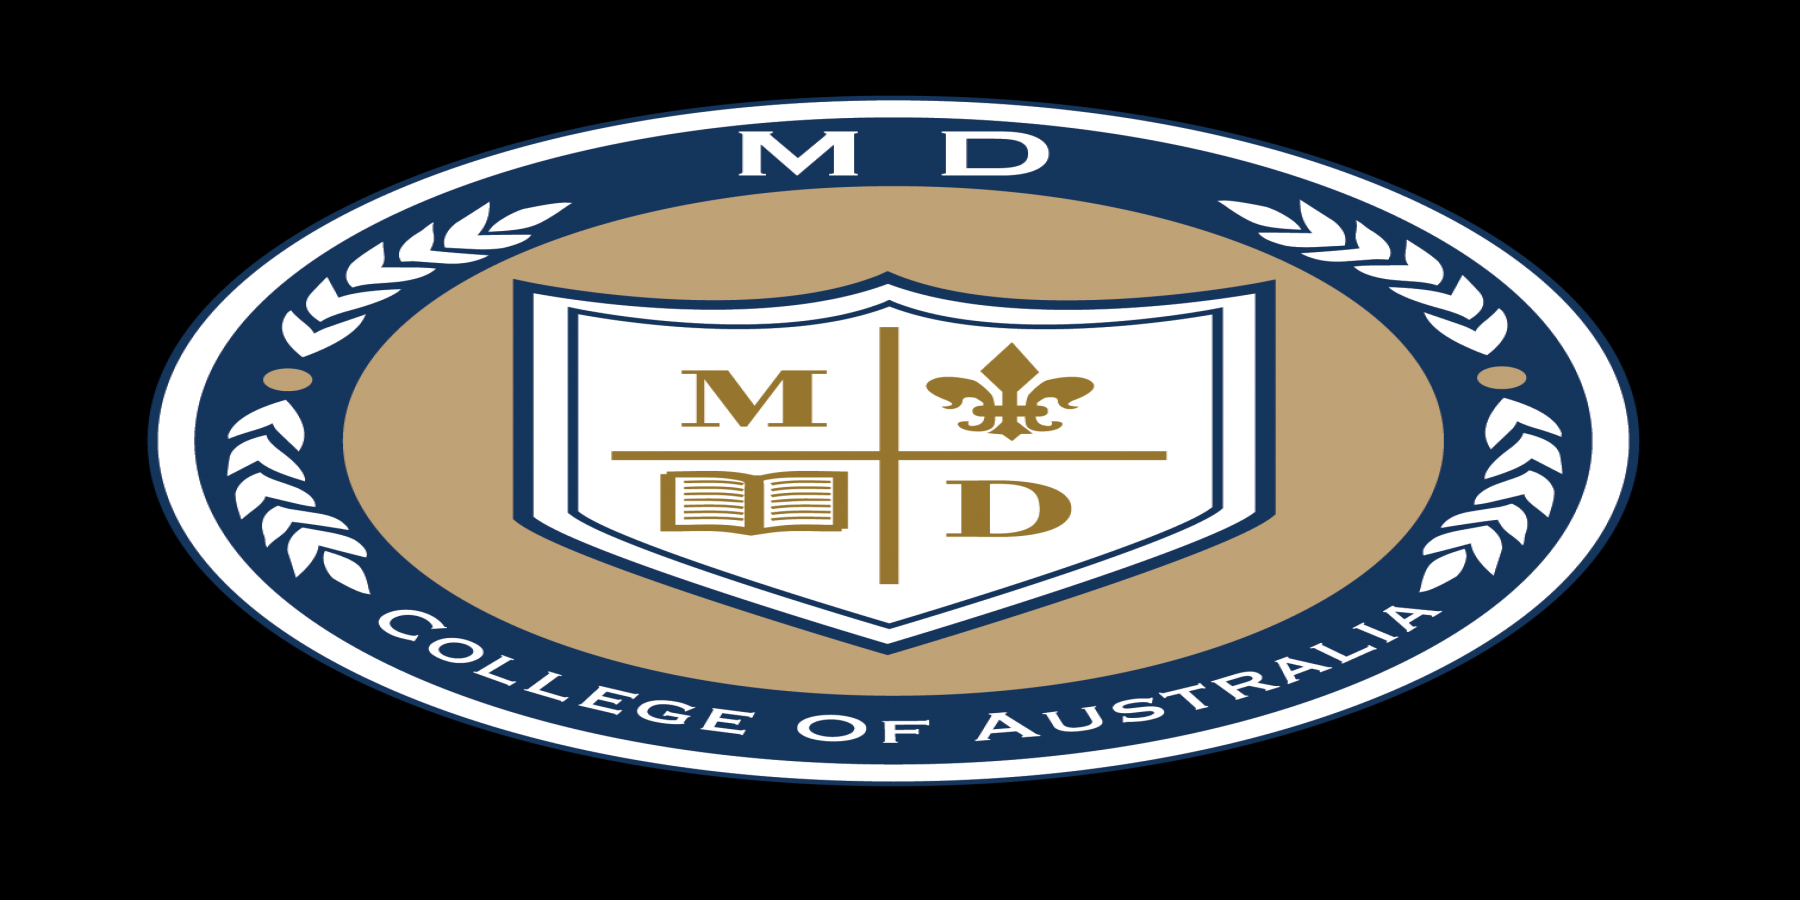 Công ty MD COLLEGE OF AUSTRALIA